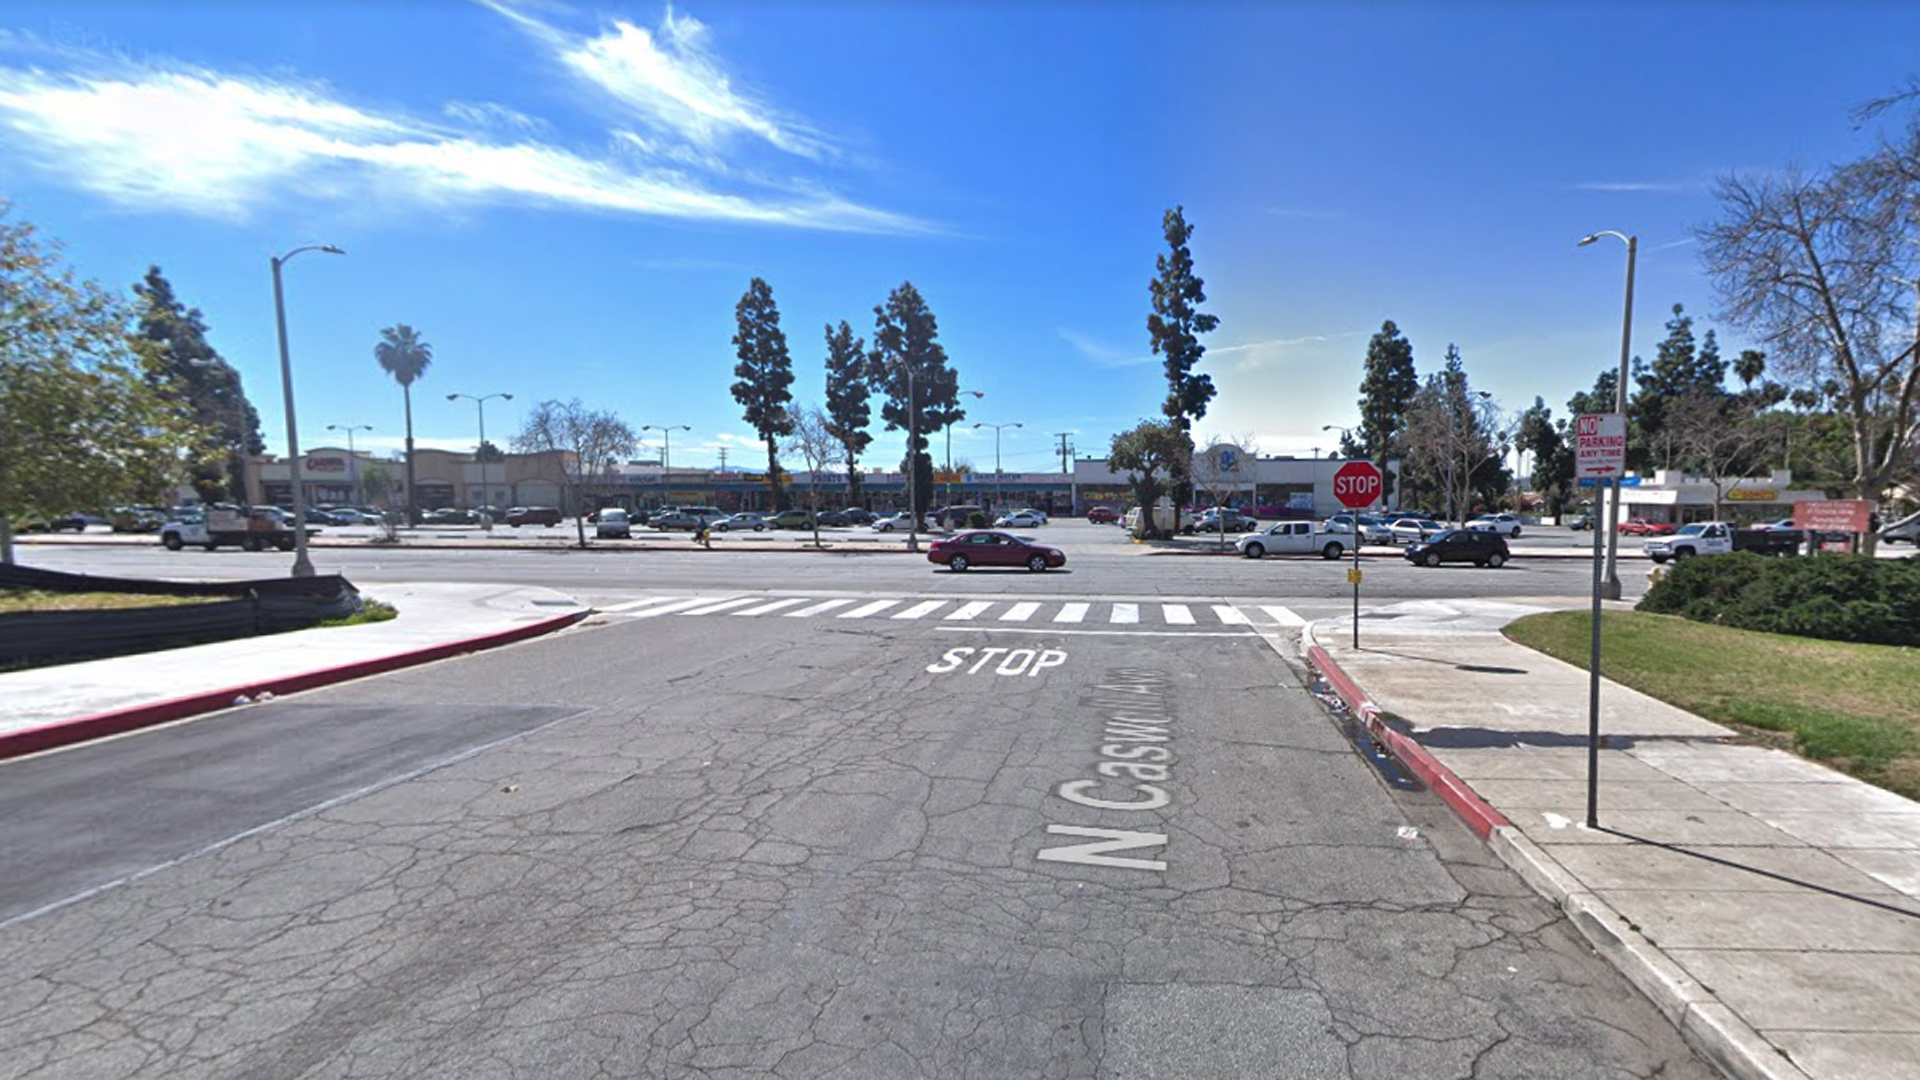 The intersection of Holt and Caswell avenues in Pomona, as pictured in a Google Street View image.